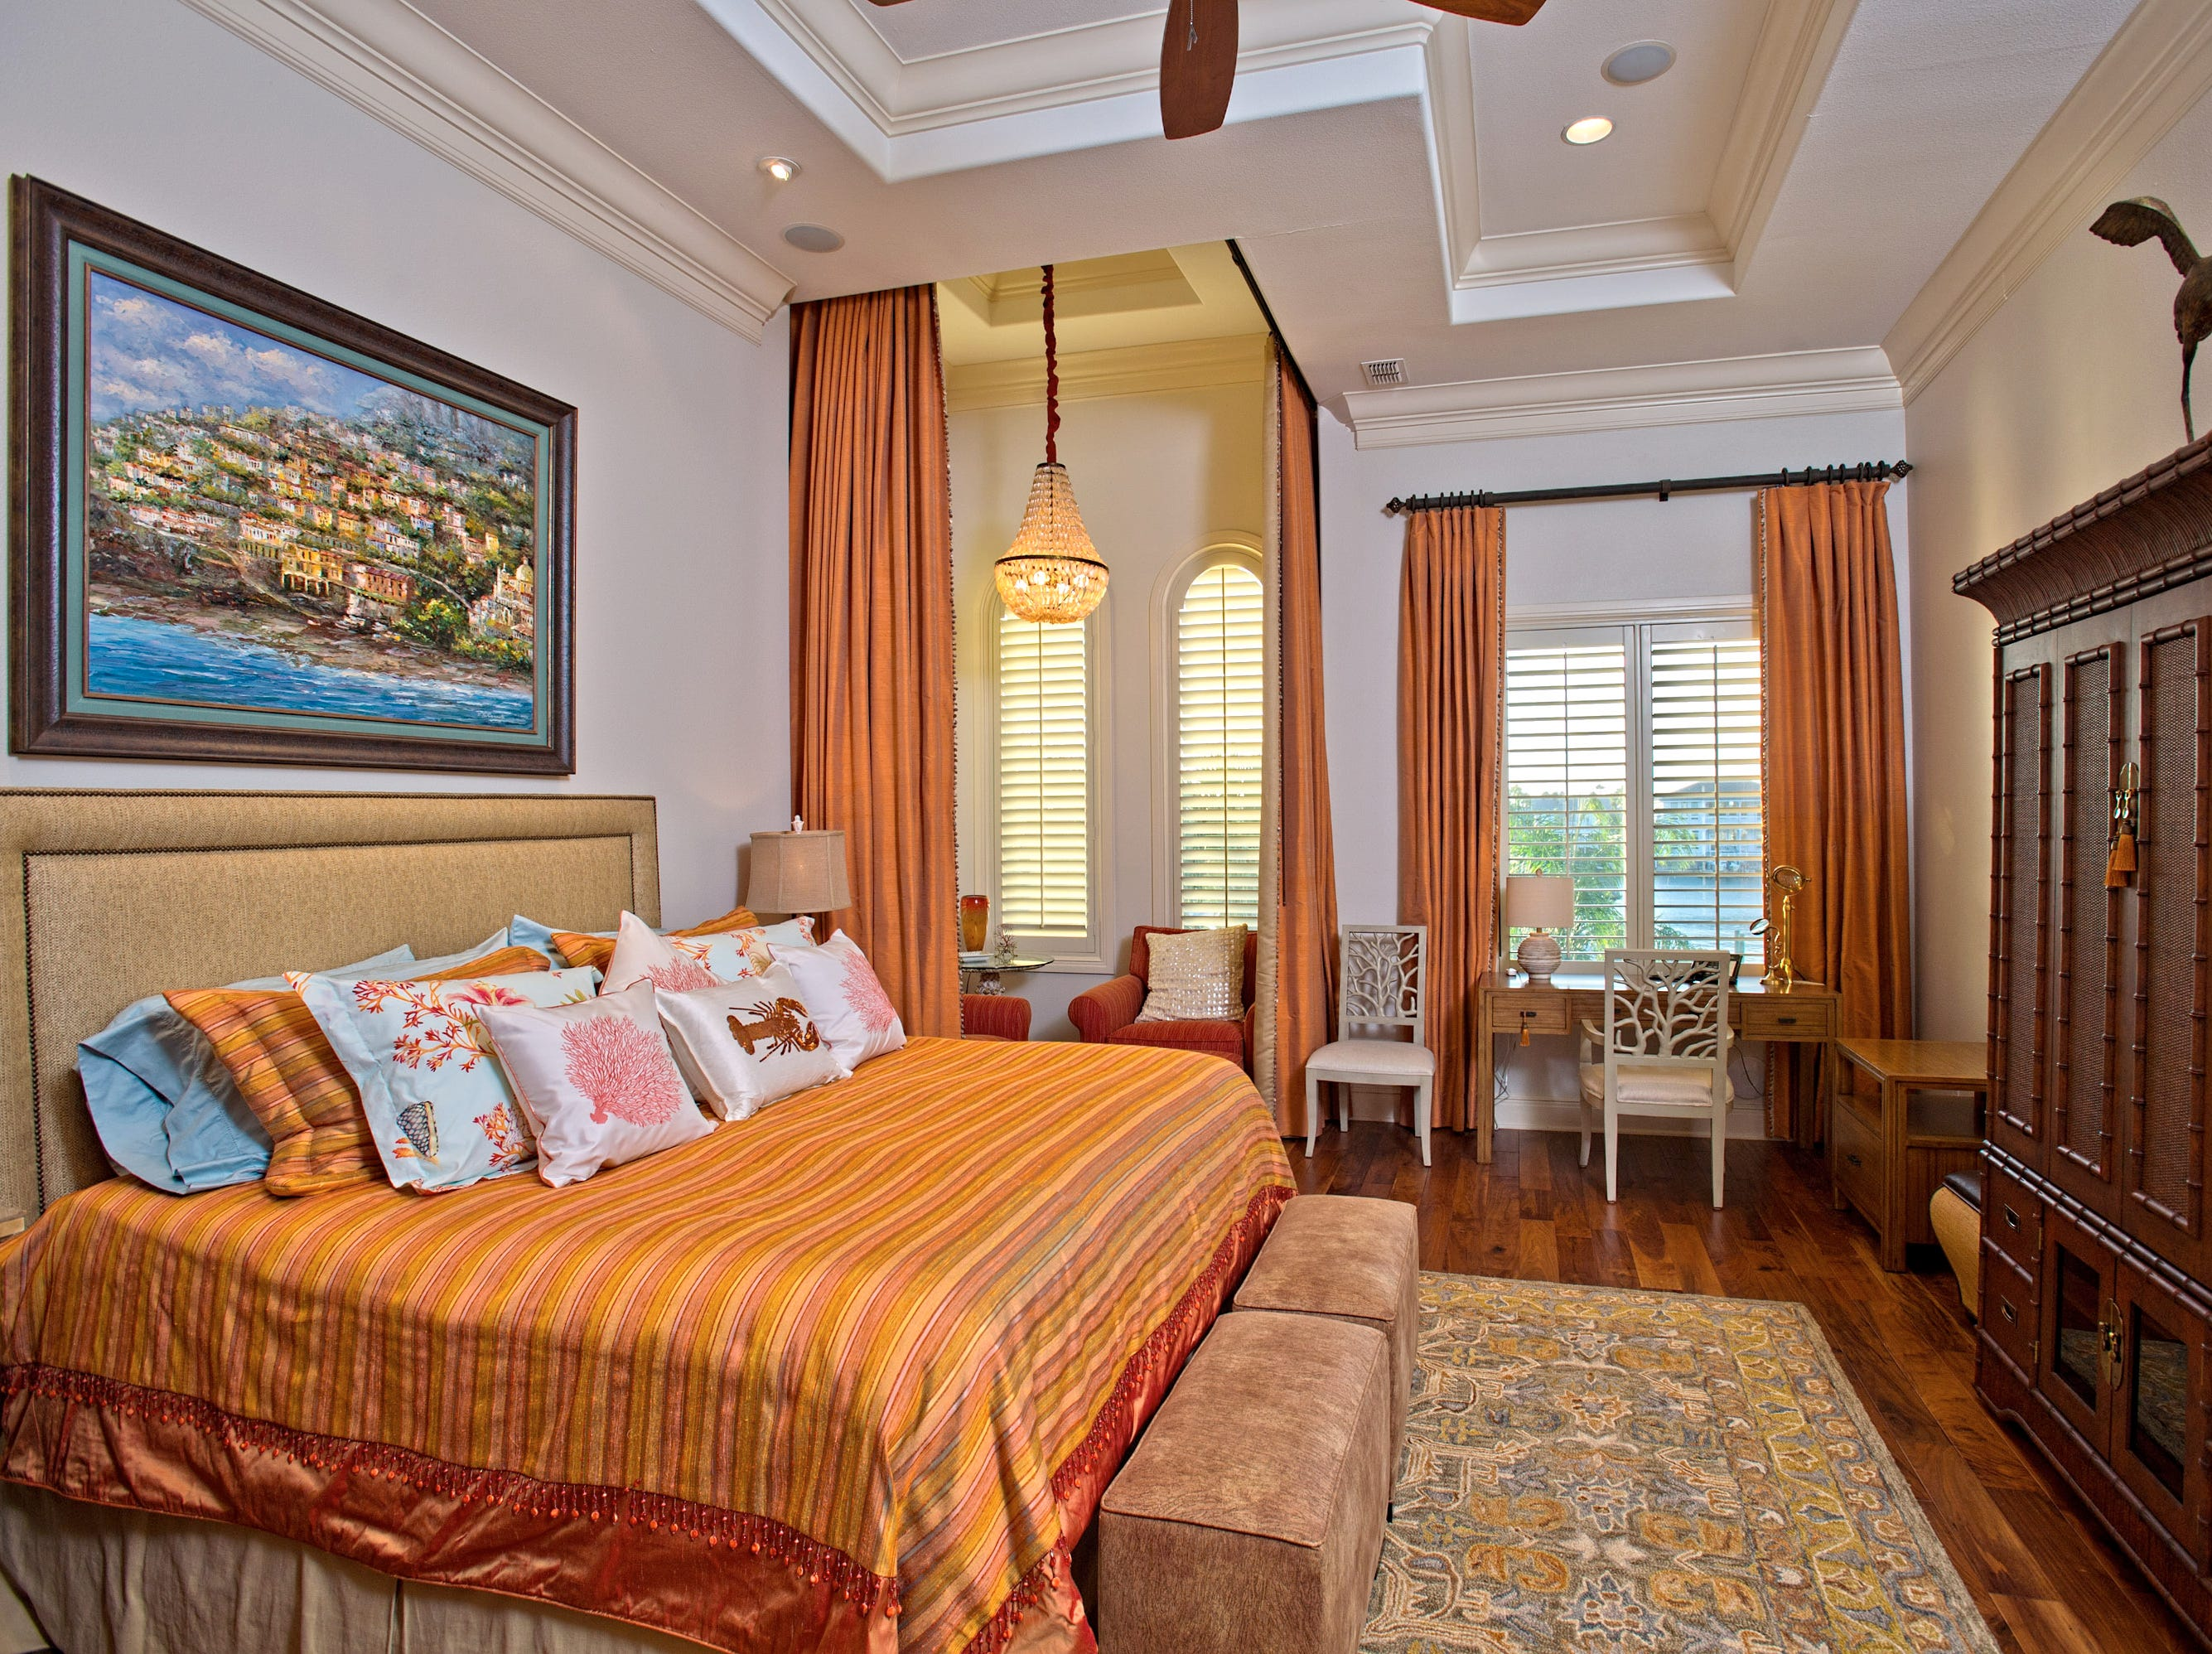 The spacious master bedroom has a majestic recessed ceiling with wonderful crown molding, a sitting area, Brazilian hardwood flooring and water views.